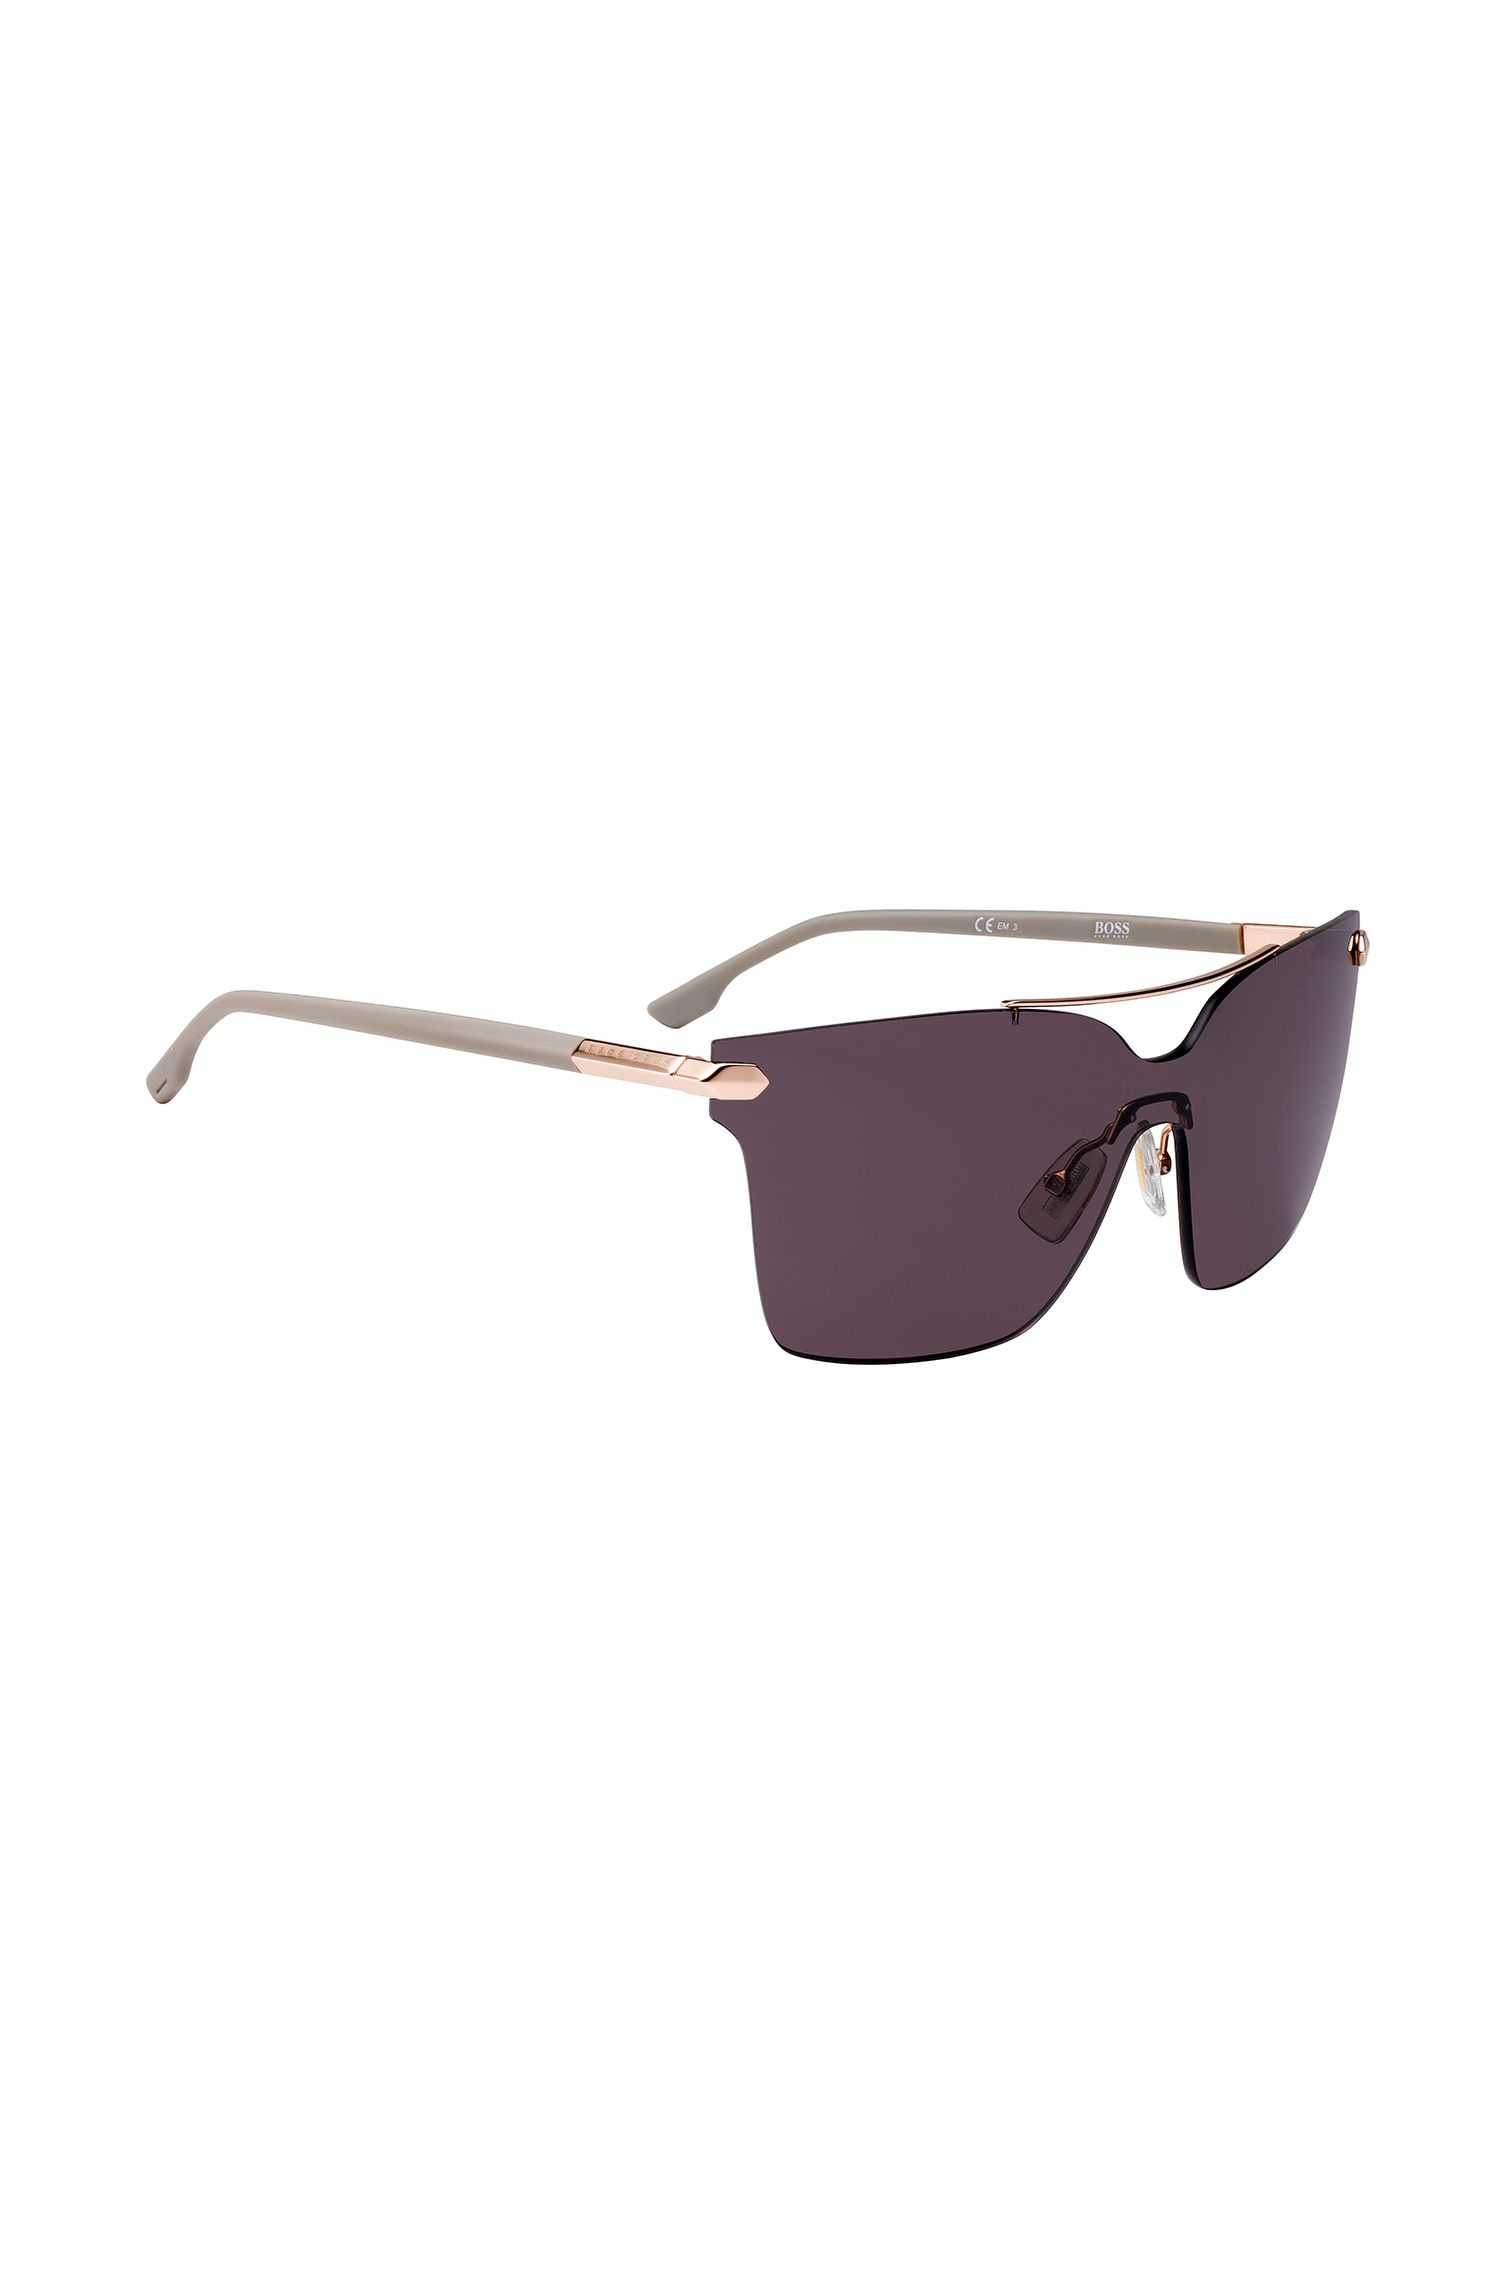 Shield sunglasses with riveted hinges, Beige